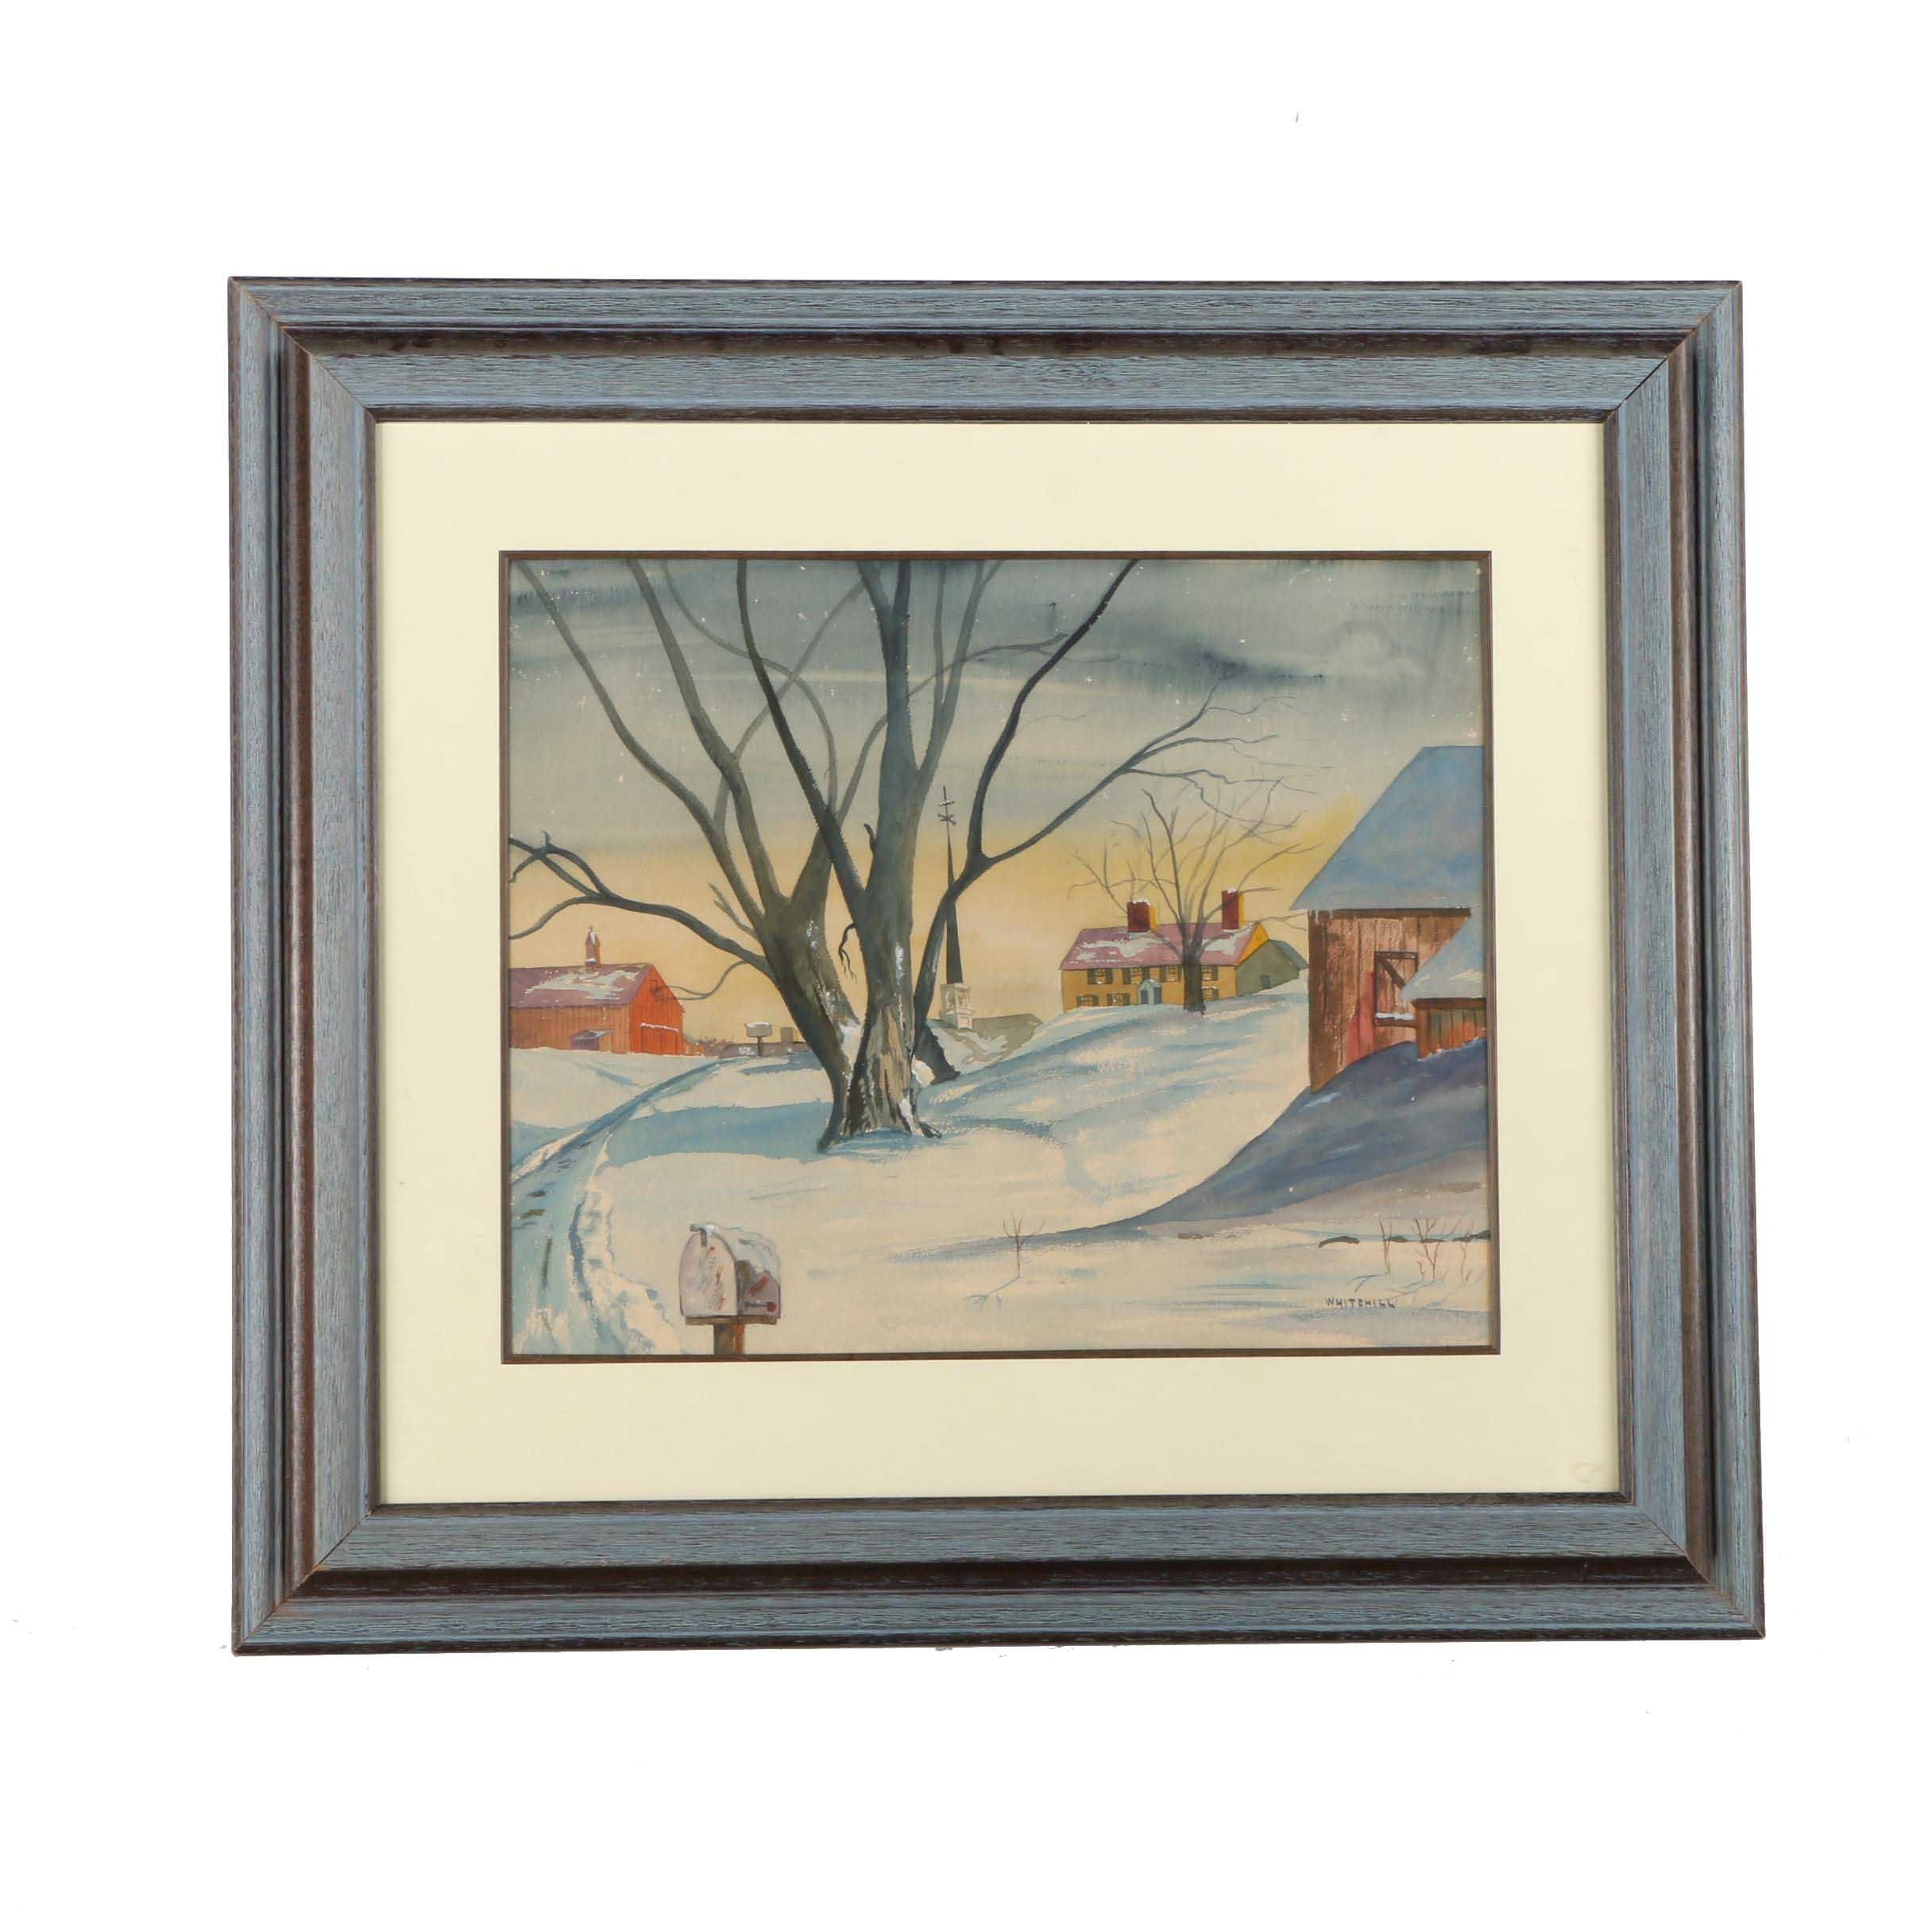 Whitehill Watercolor Painting of a Rural Winterscape